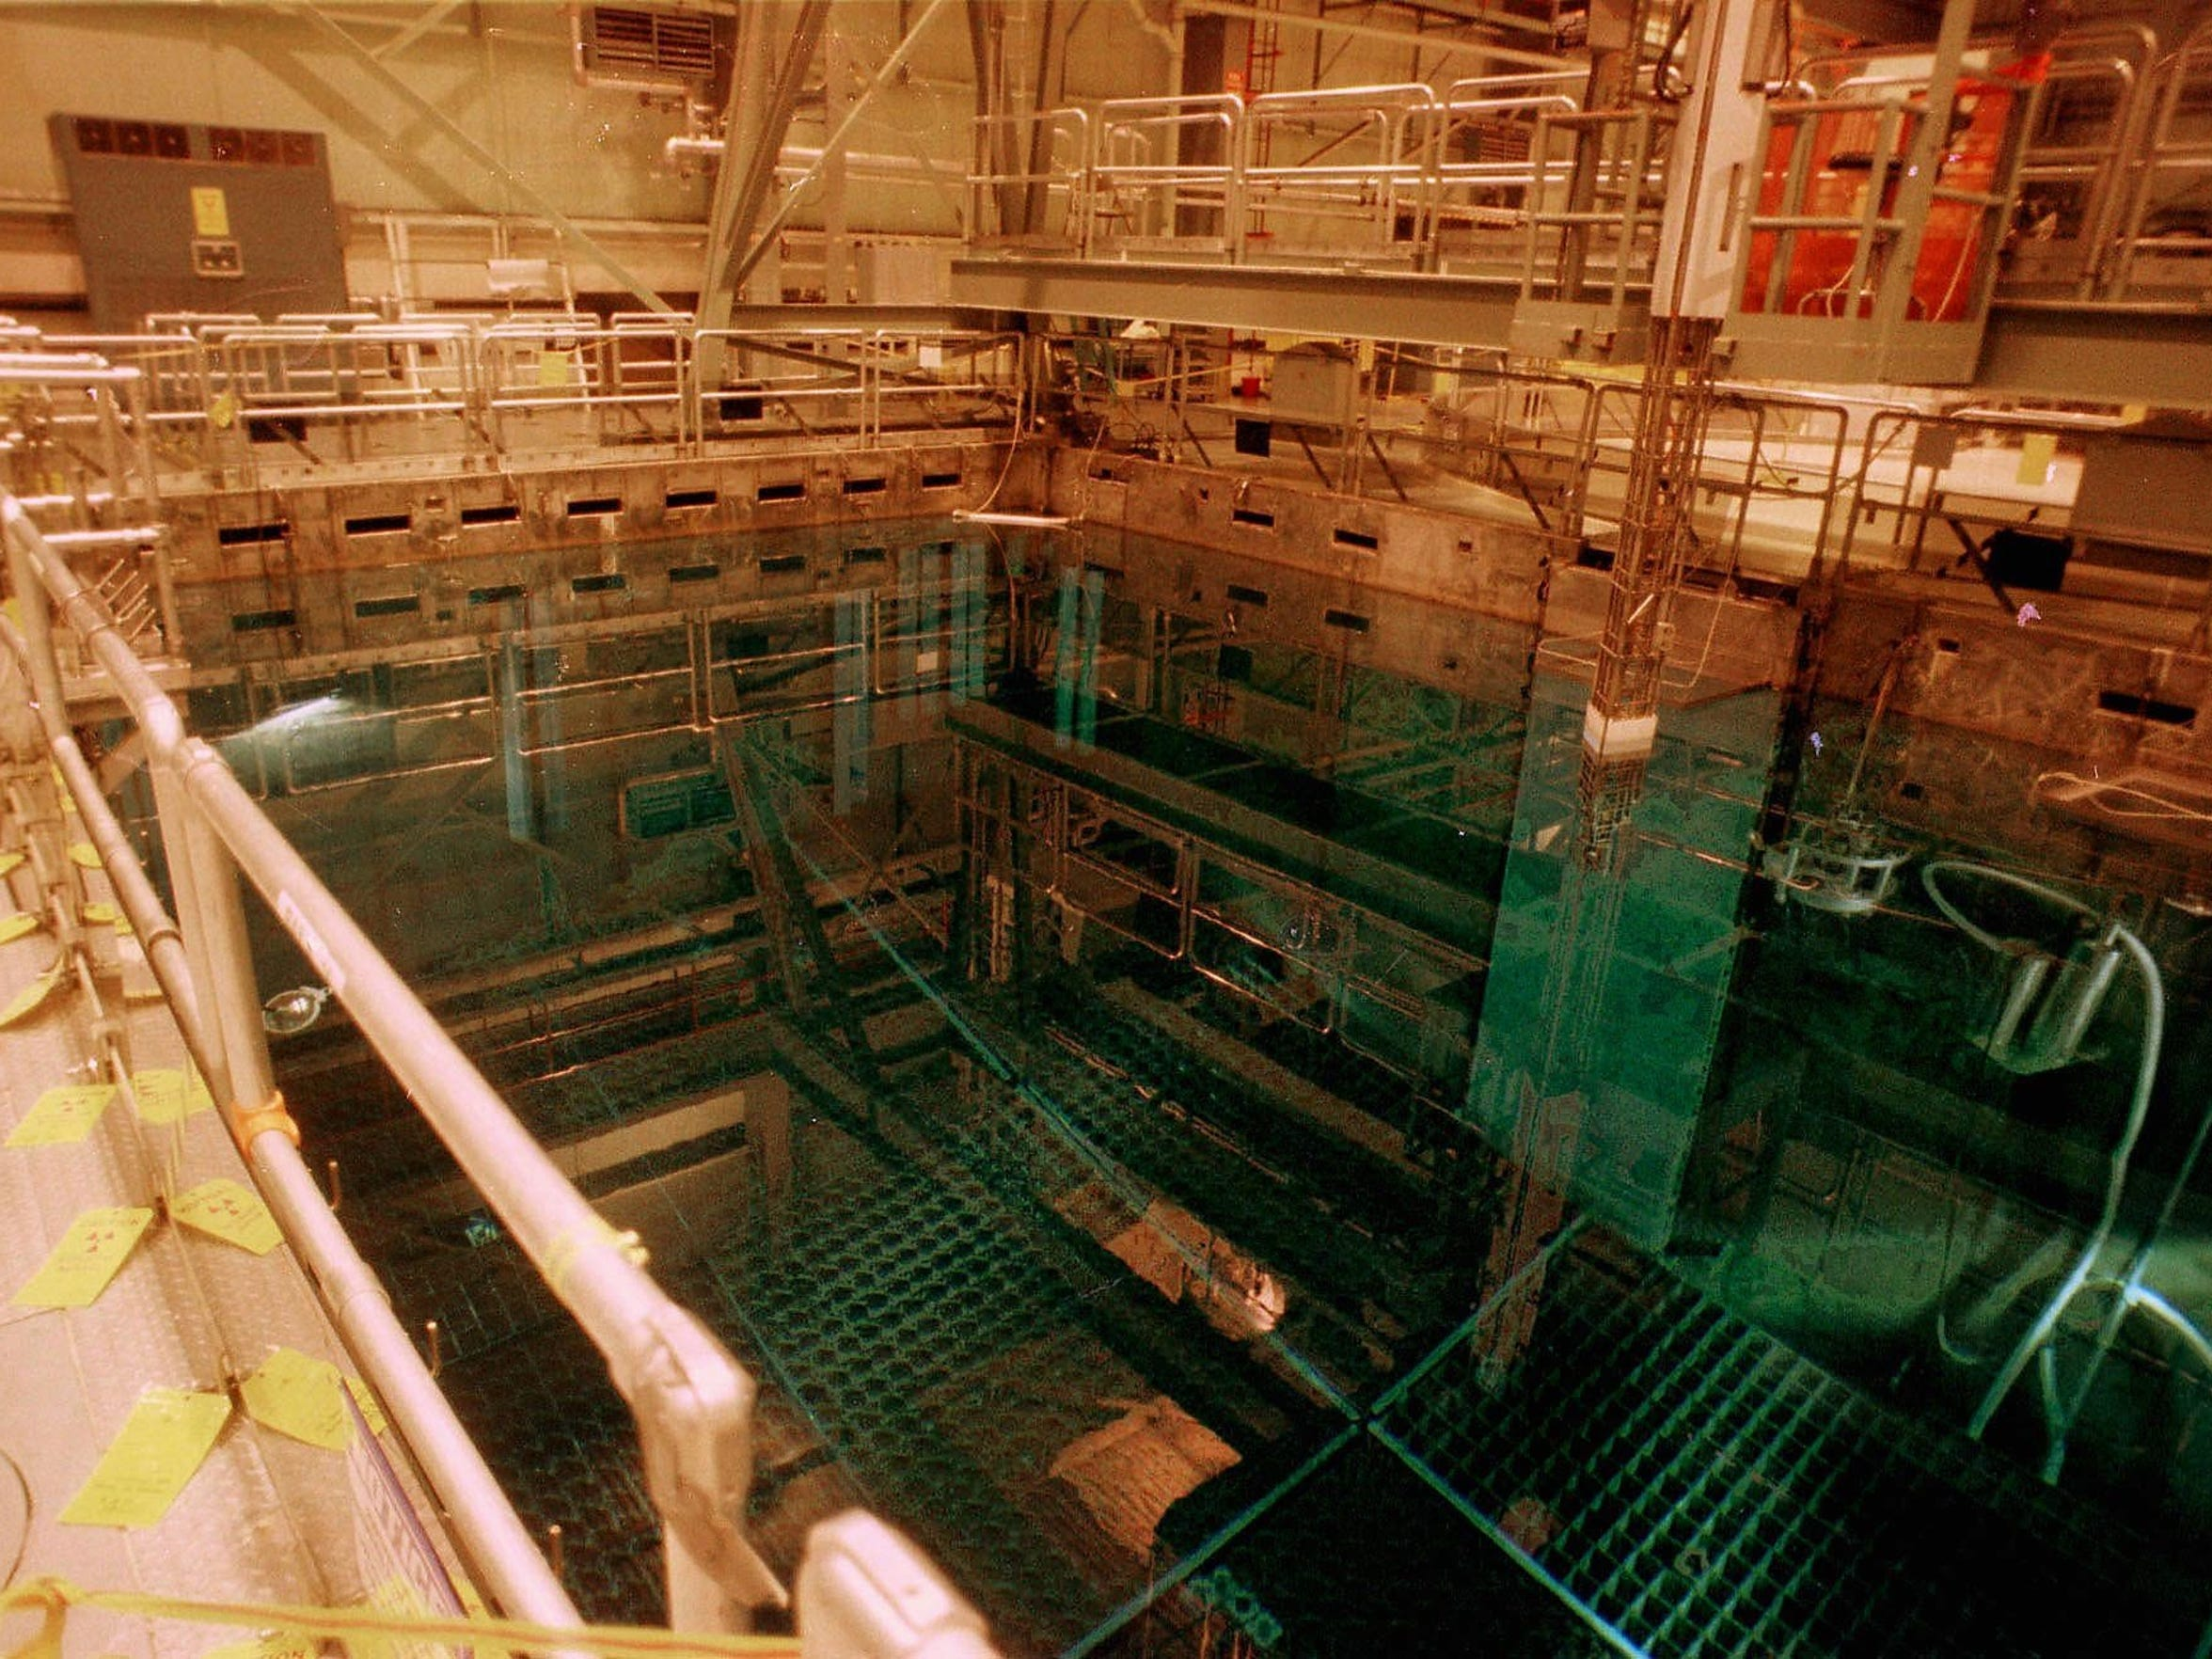 A nuclear fuel storage pool is seen in this December 1997 file photo in Vernon, Vt.